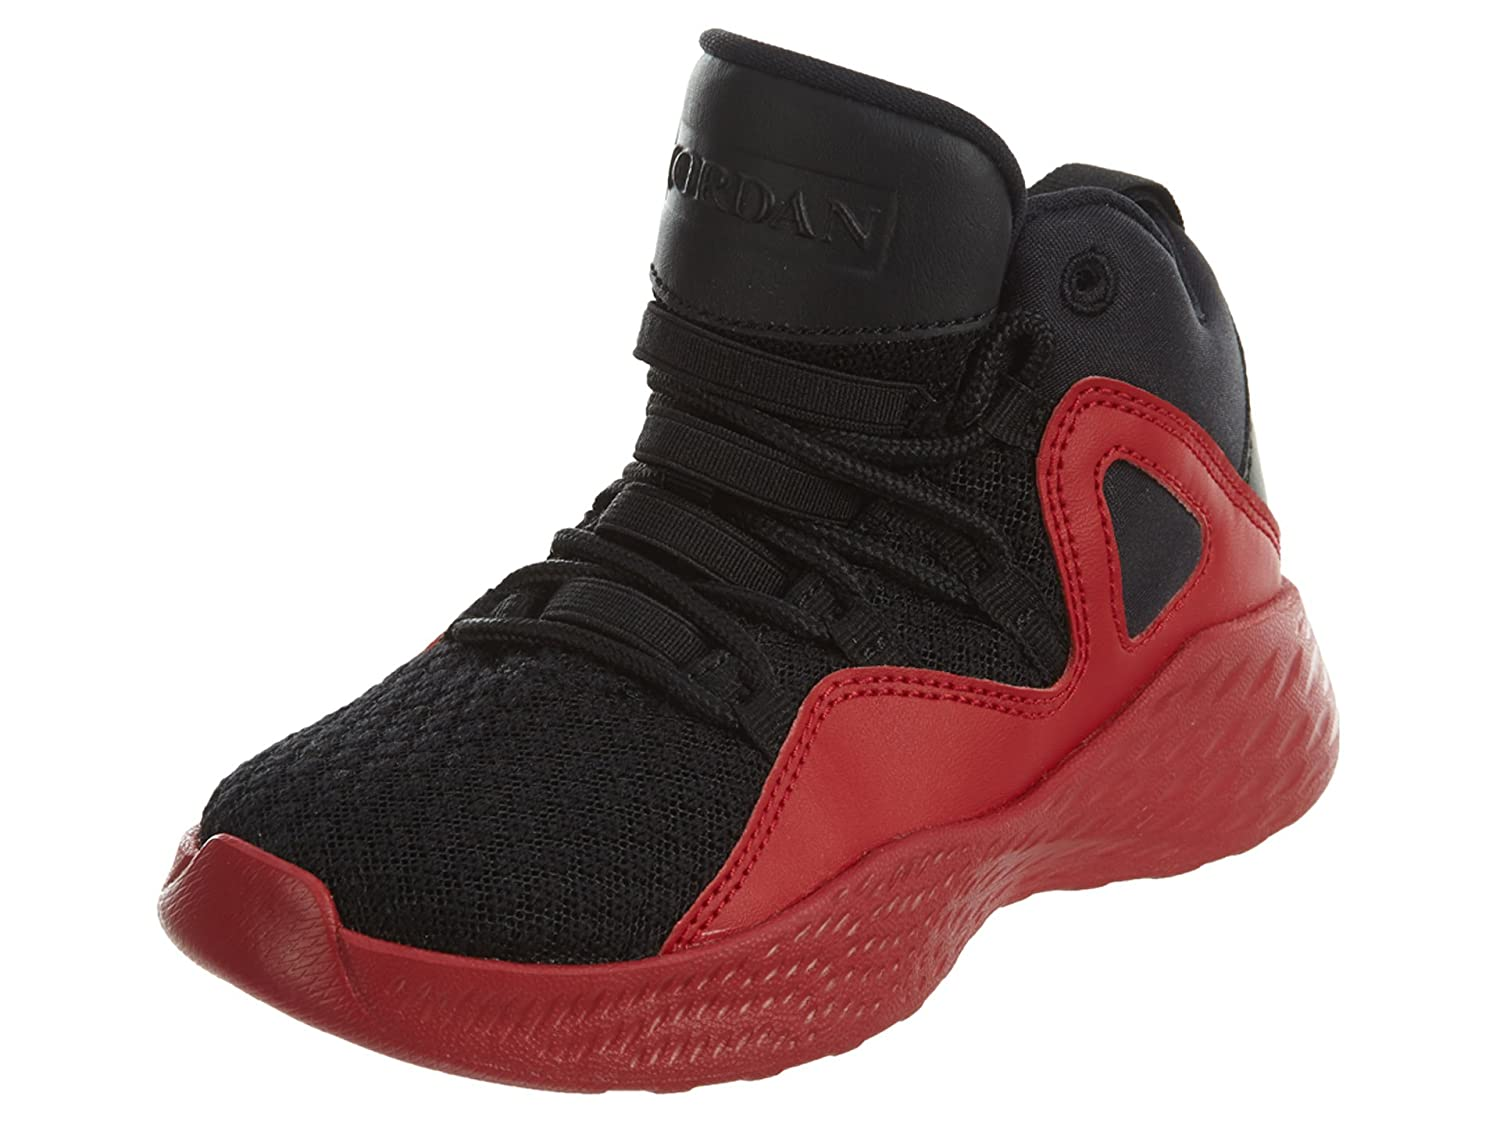 Jordan Boy's Formula 23 Basketball Shoes 881467